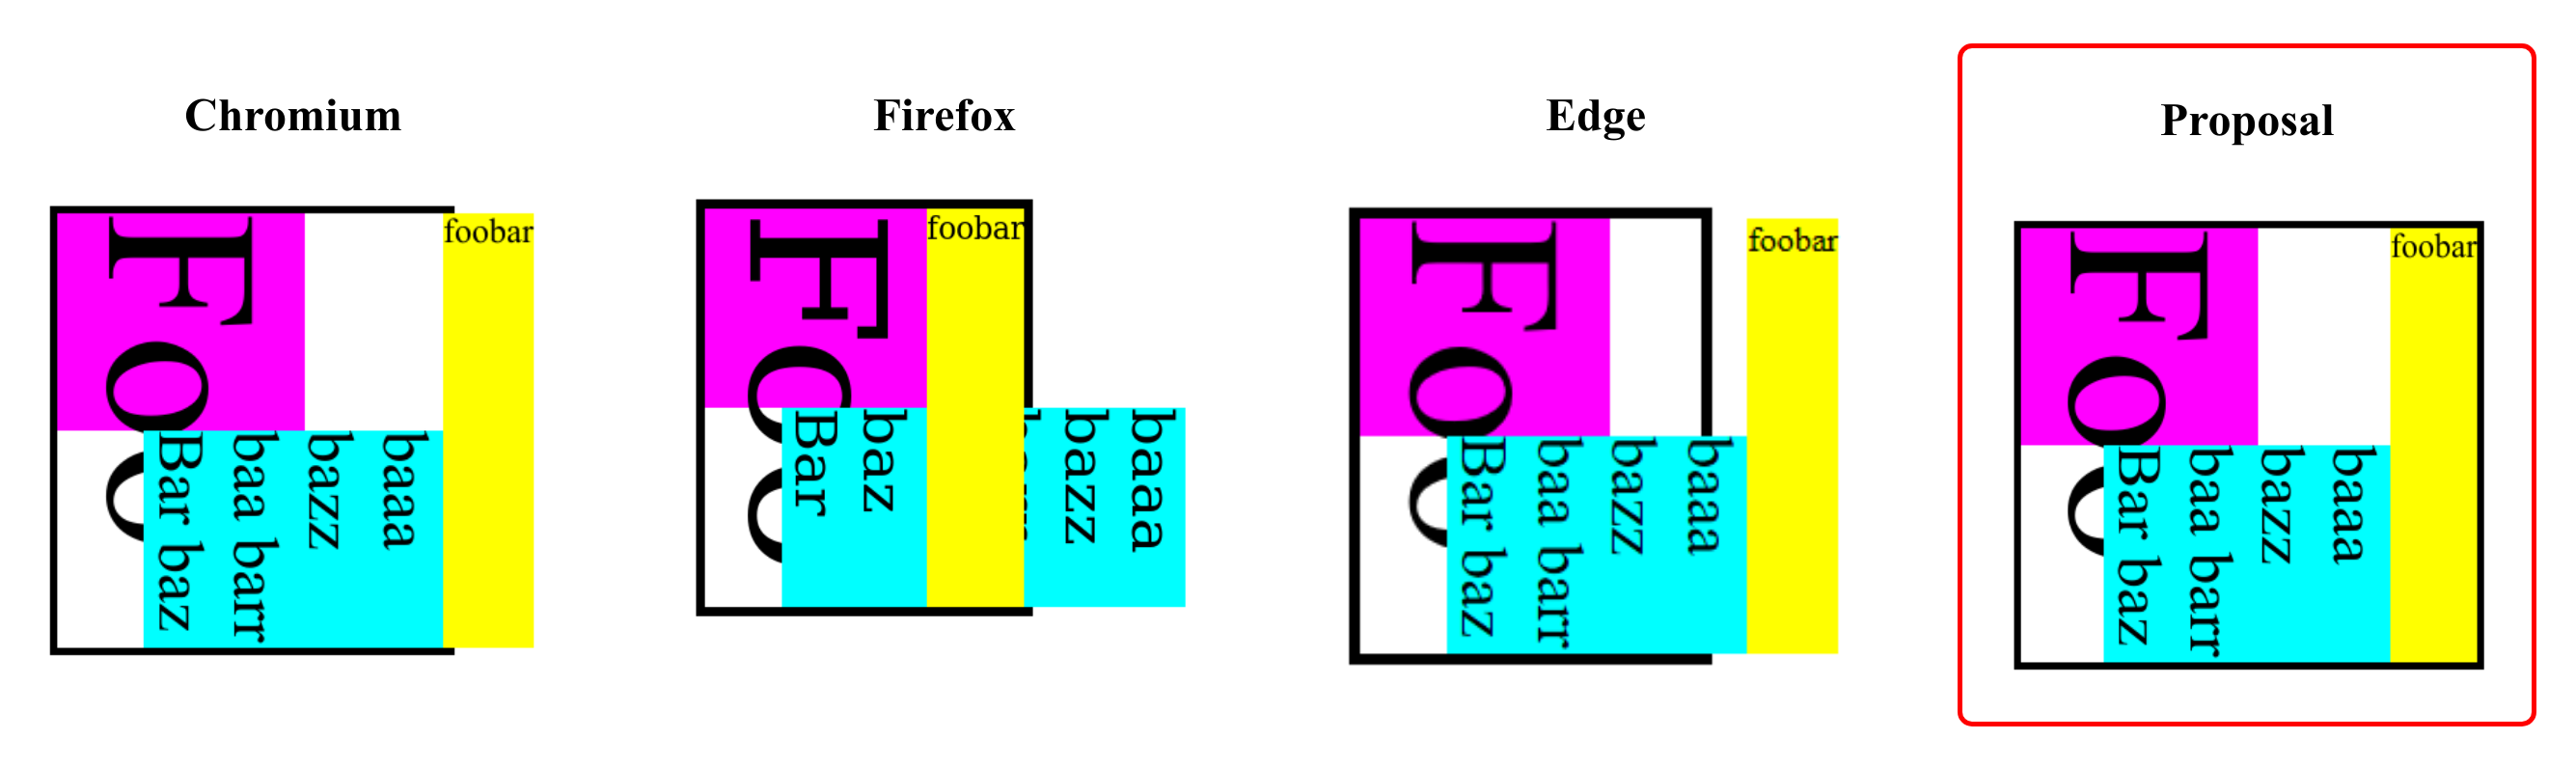 Output of the previous example in the different browsers and current proposal